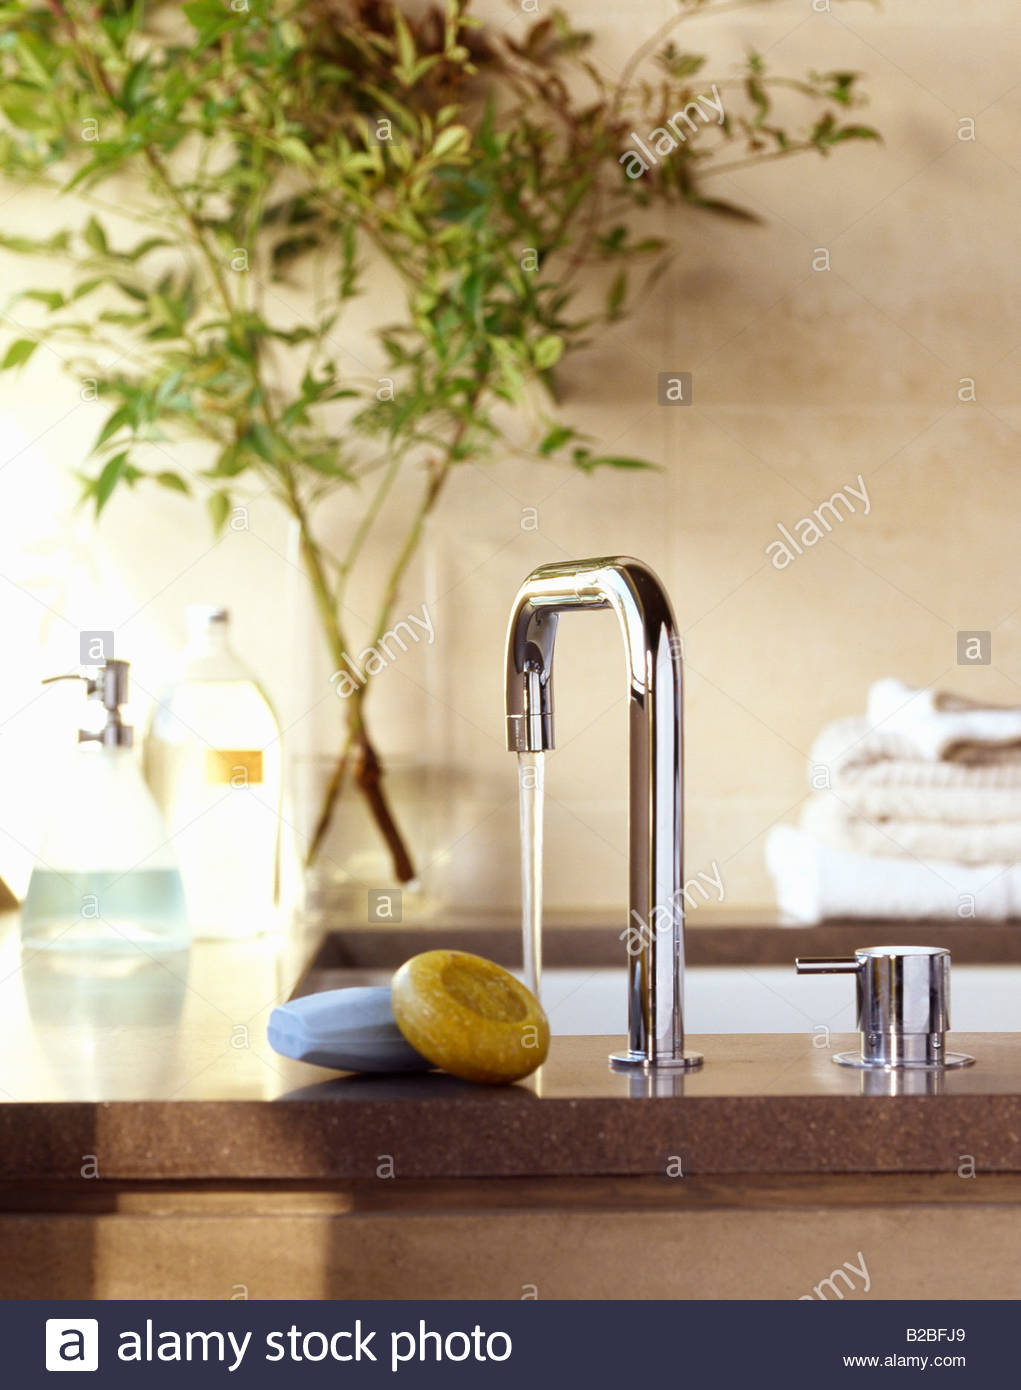 Soap next to running faucet - Stock Image